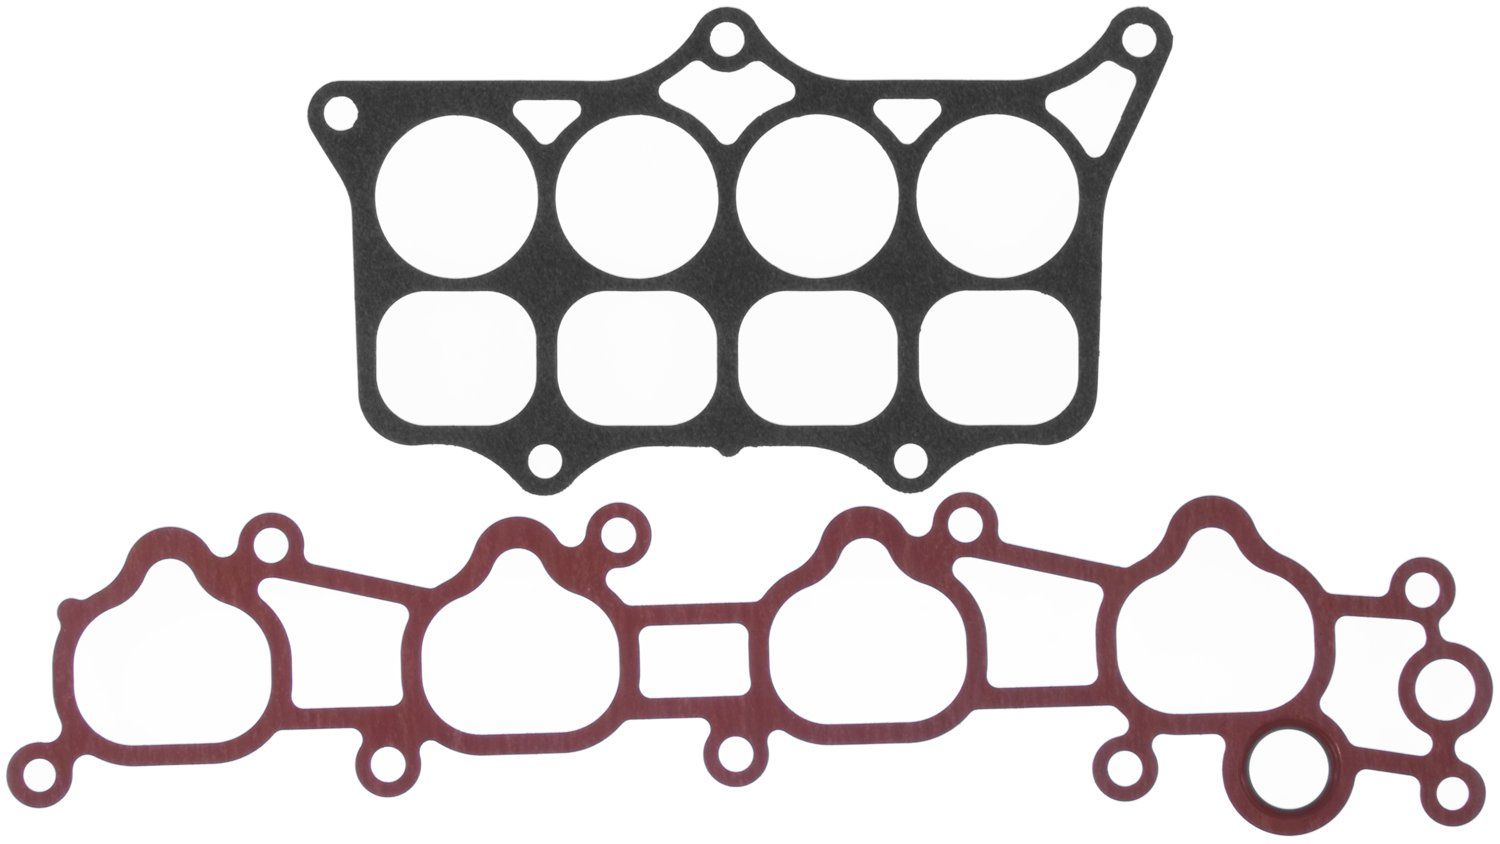 Honda Accord Engine Intake Manifold Gasket Set Replacement Beck 1991 4 Cyl 22l Victor Gaskets Ms15564w